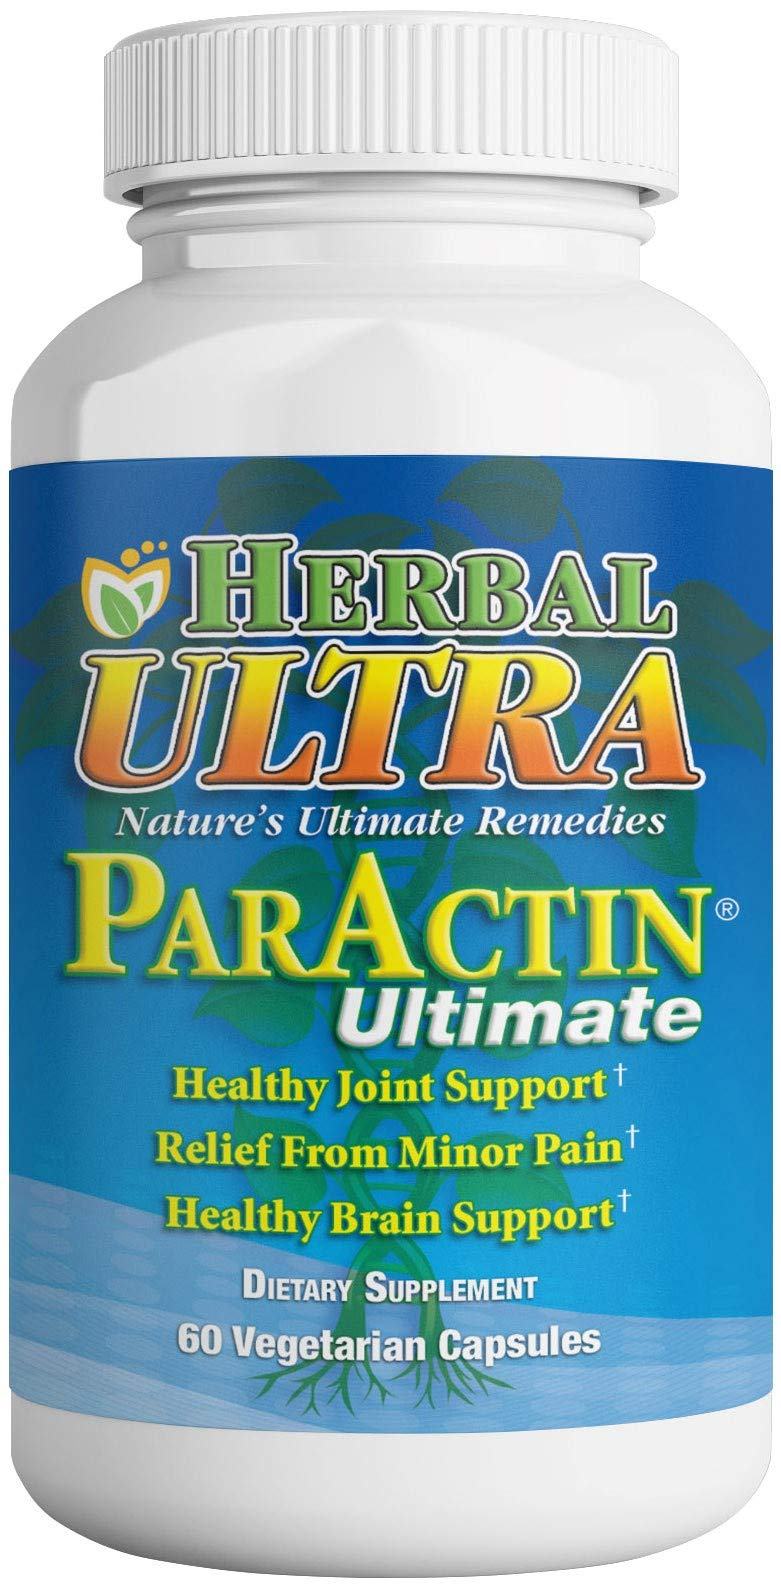 ParActin - Anti-Inflammatory Supplement - Back, Neck, Pain, and Joint Support Vitamins - Herbal Ultra (60 Count) by Herbal Ultra Nature's Ultimate Remedies